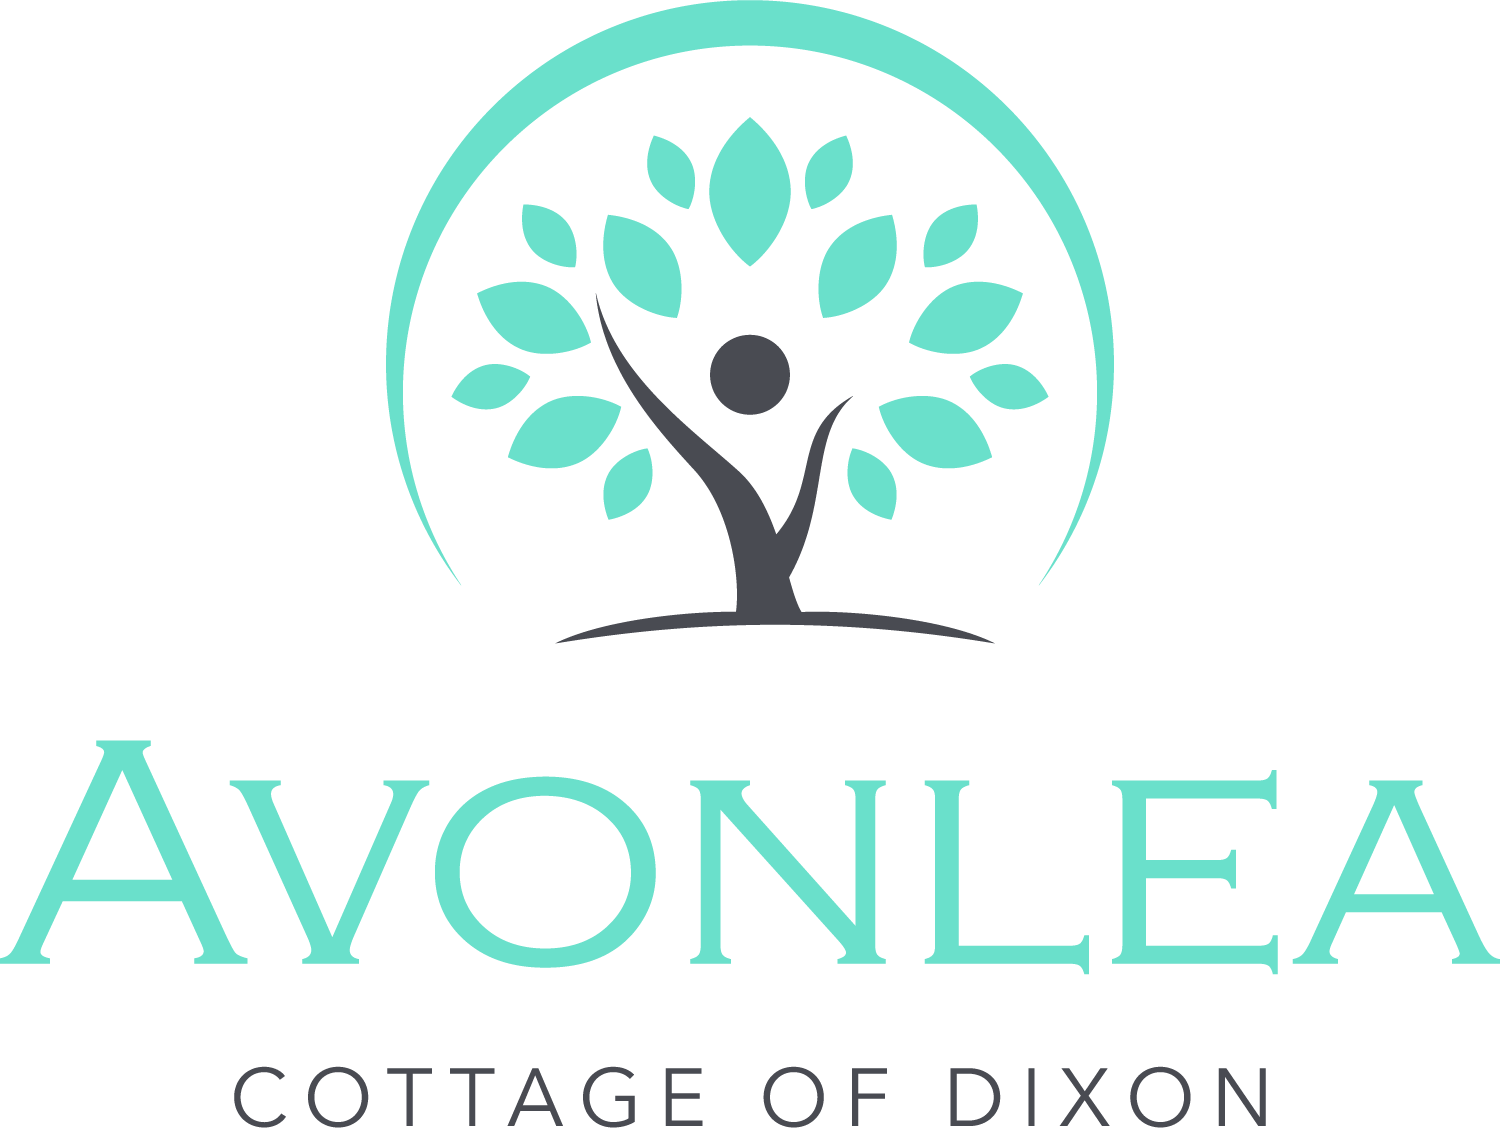 Assisted Living by Avonlea Cottage of Dixon, IL